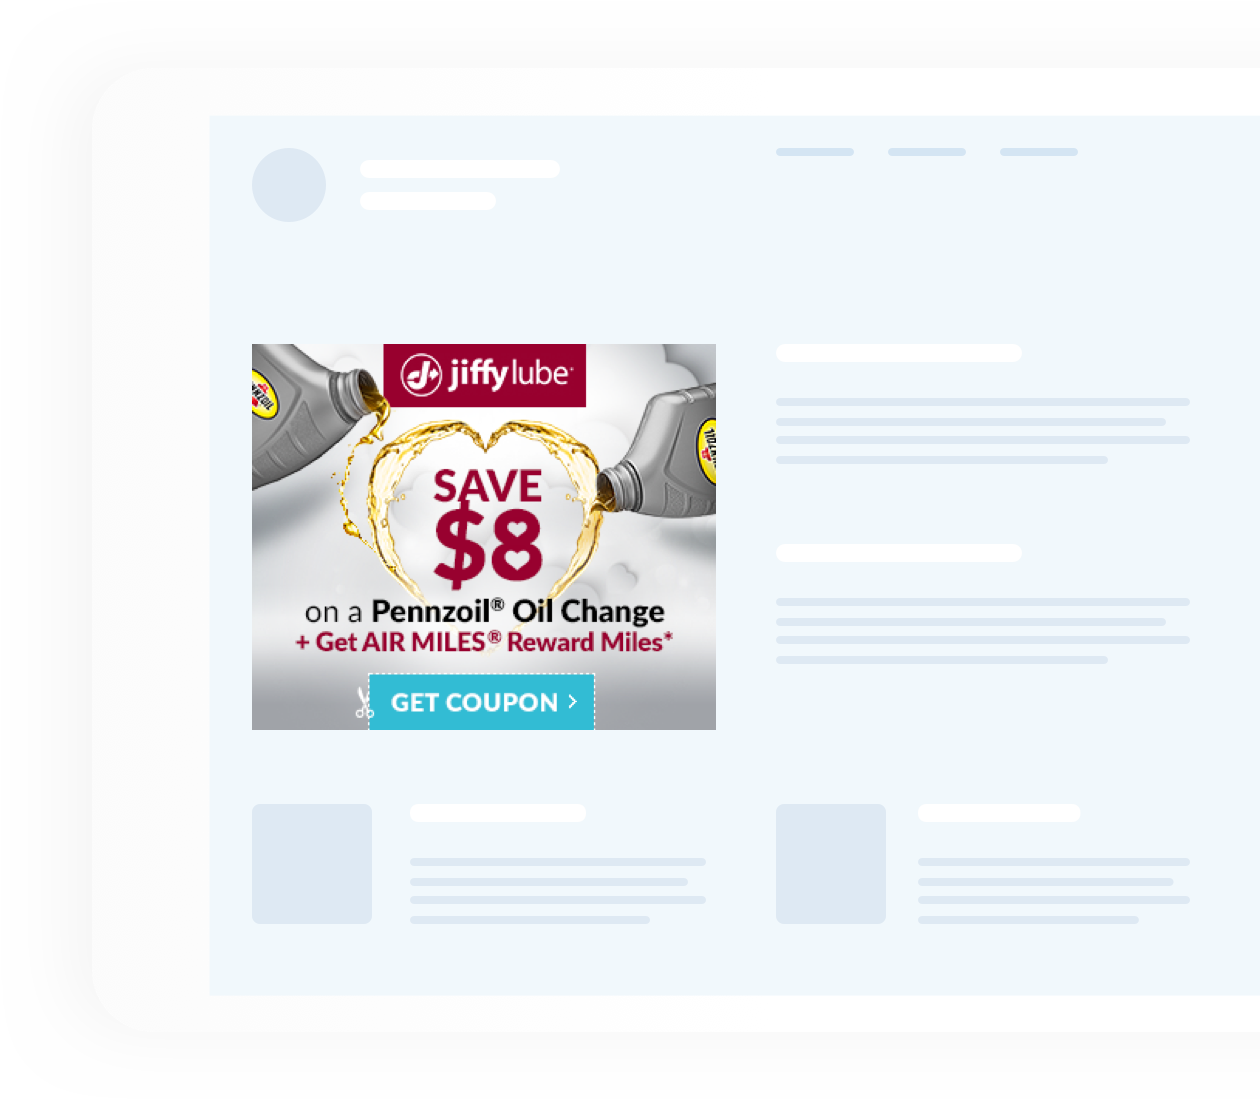 Jiffy Lube save $8 promotion on a website layout